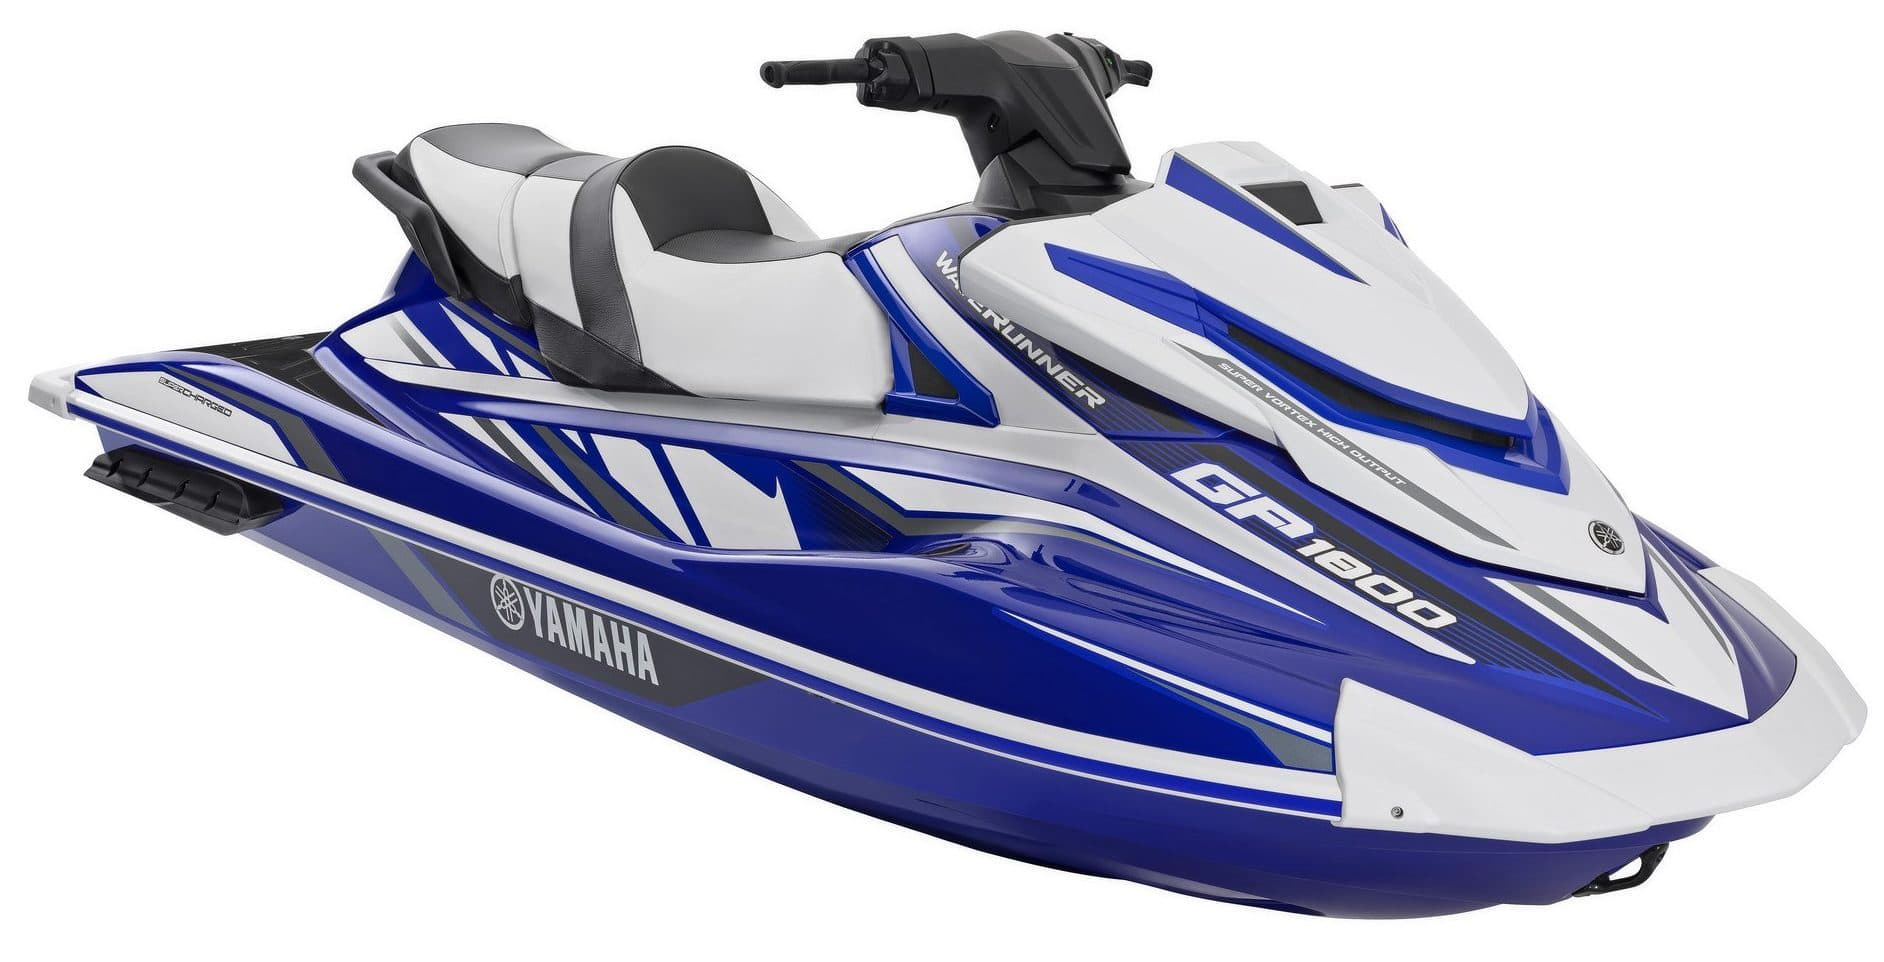 Yamaha gp1800 review top speed specs more for Yamaha gp1800 horsepower